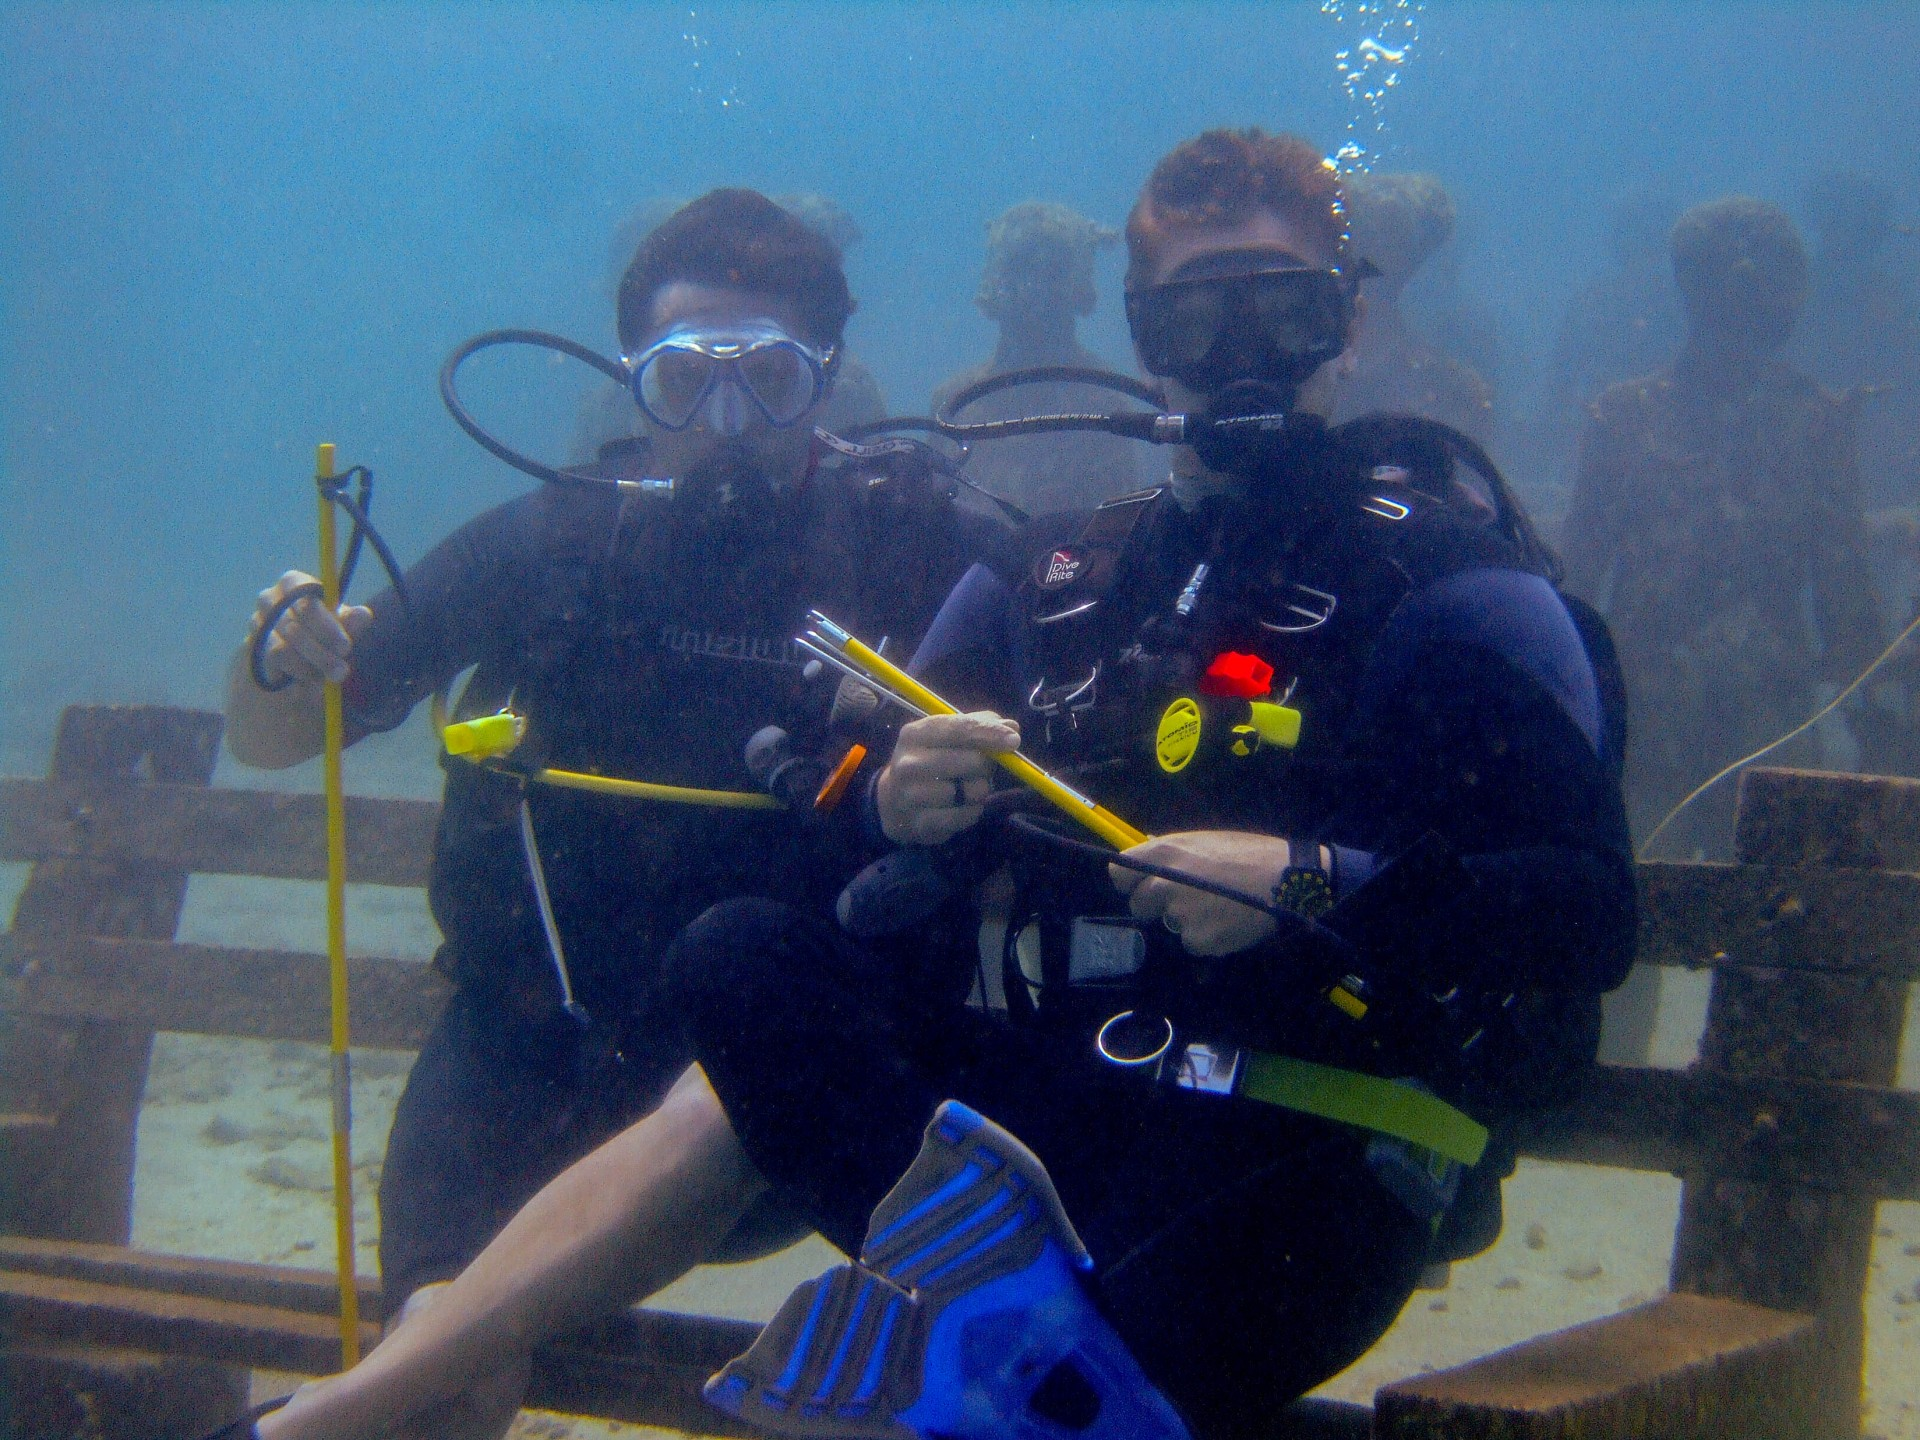 Divers sit on a bench at the Grenada underwater sculpture park